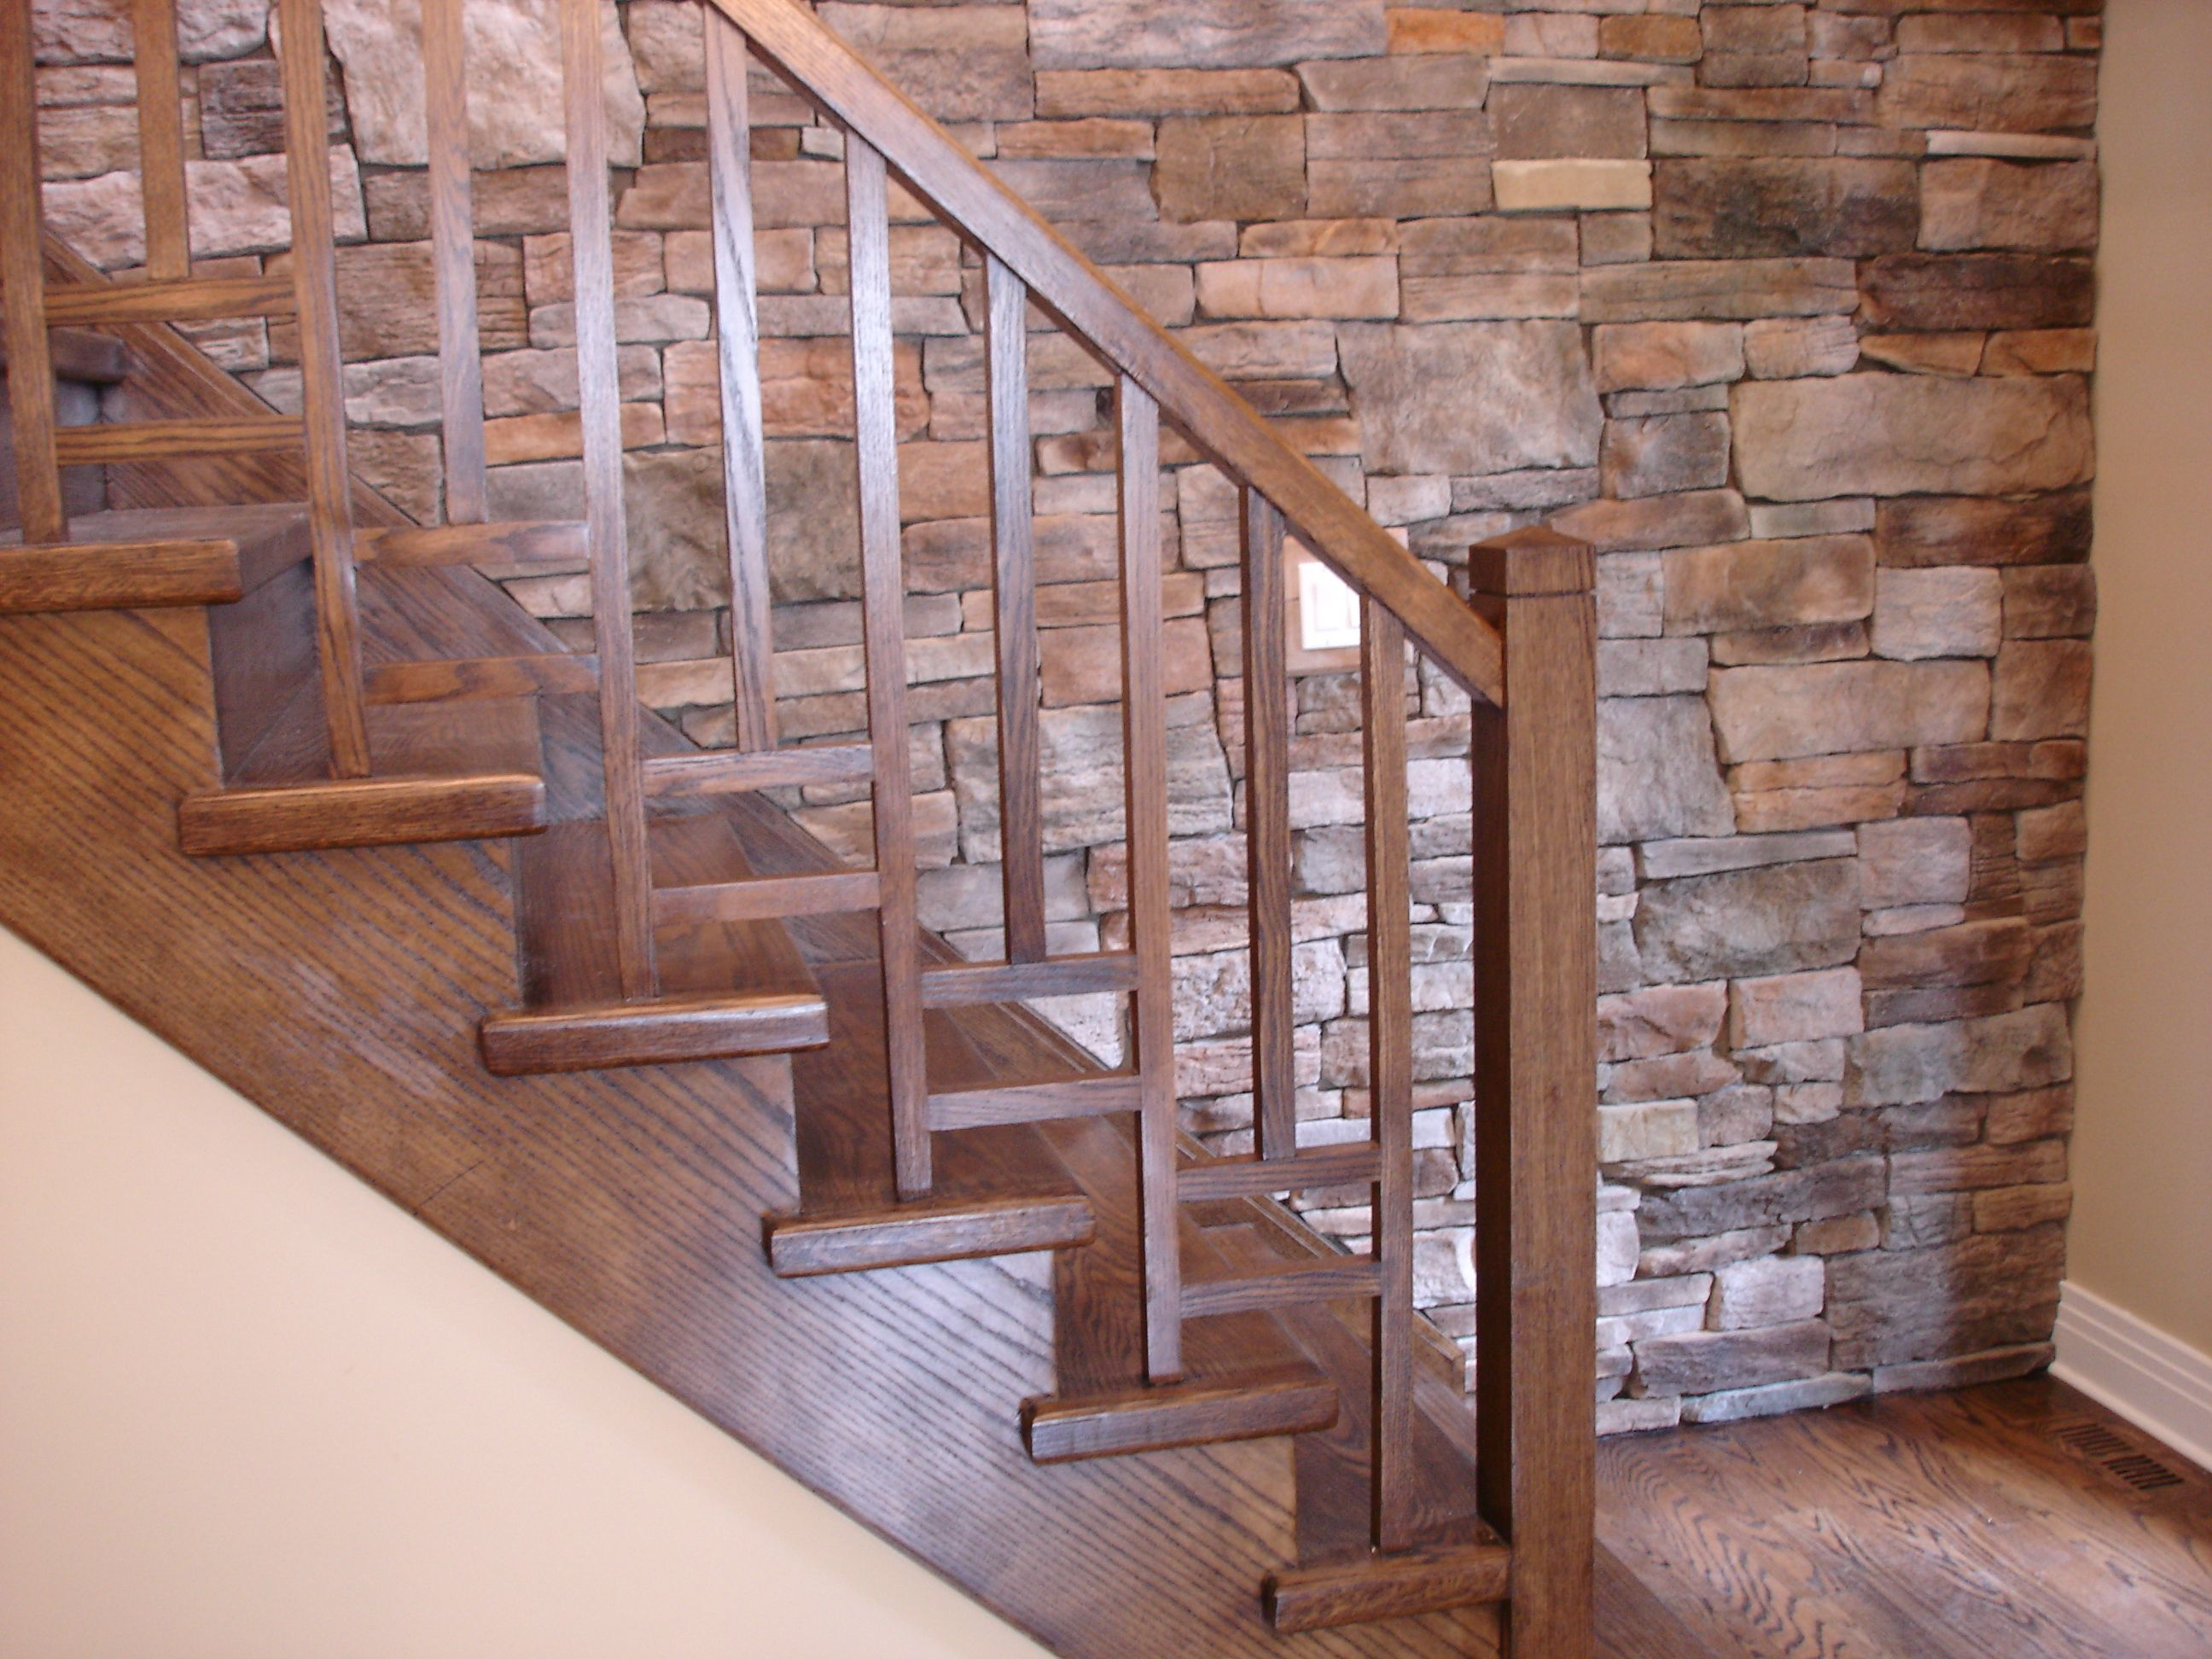 Modern Interior Stair Railings Mestel Brothers Stairs Rails Inc 516 496 4127 Wood Stair